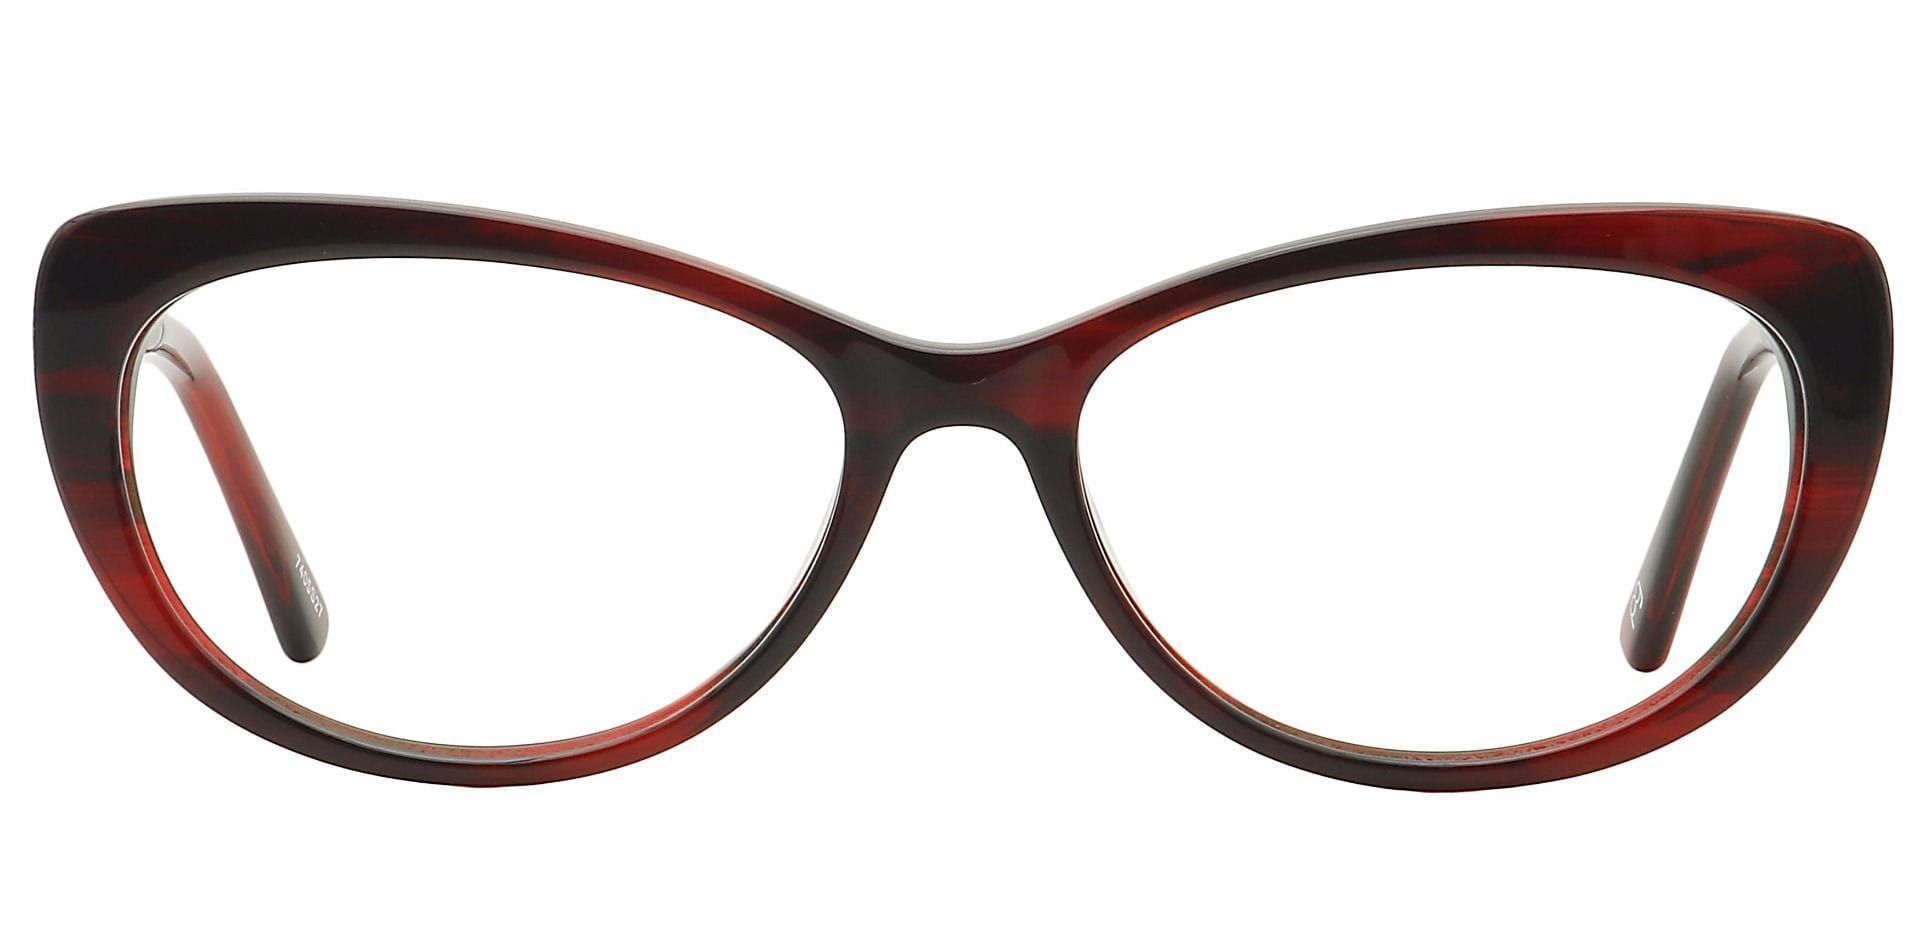 Lin Cat-Eye Lined Bifocal Glasses - Red